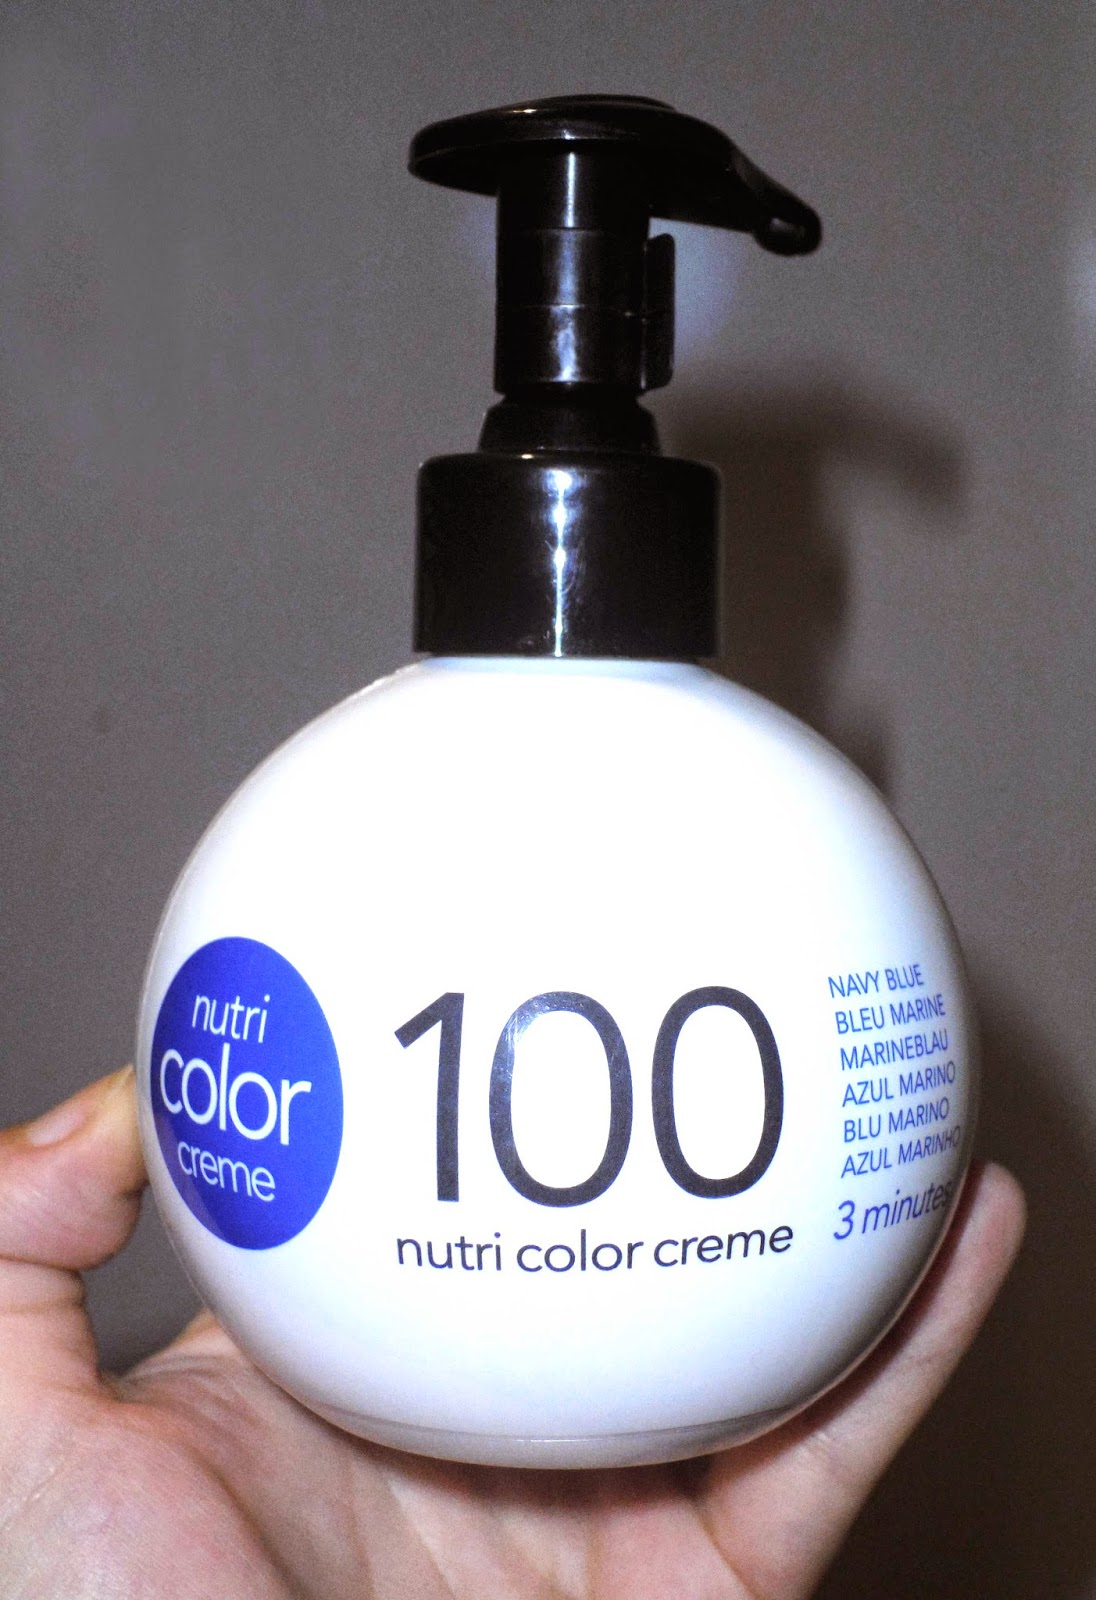 revlon nutri color creme 100 blue azul